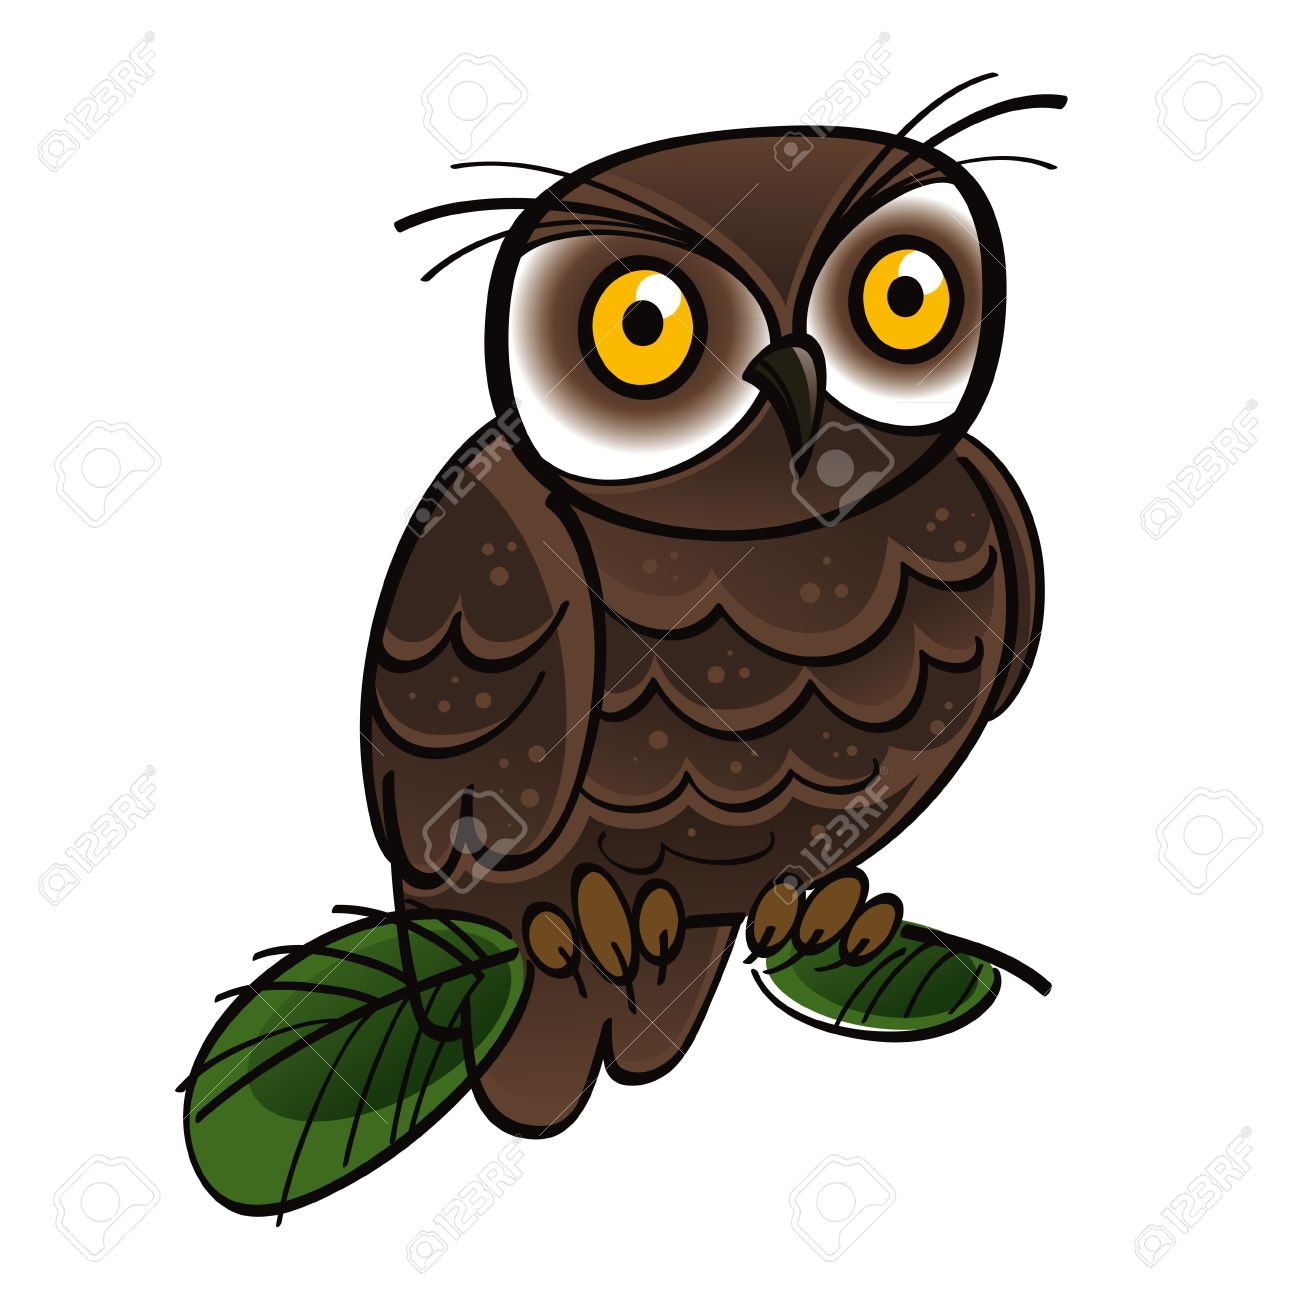 Free forest owl clipart.